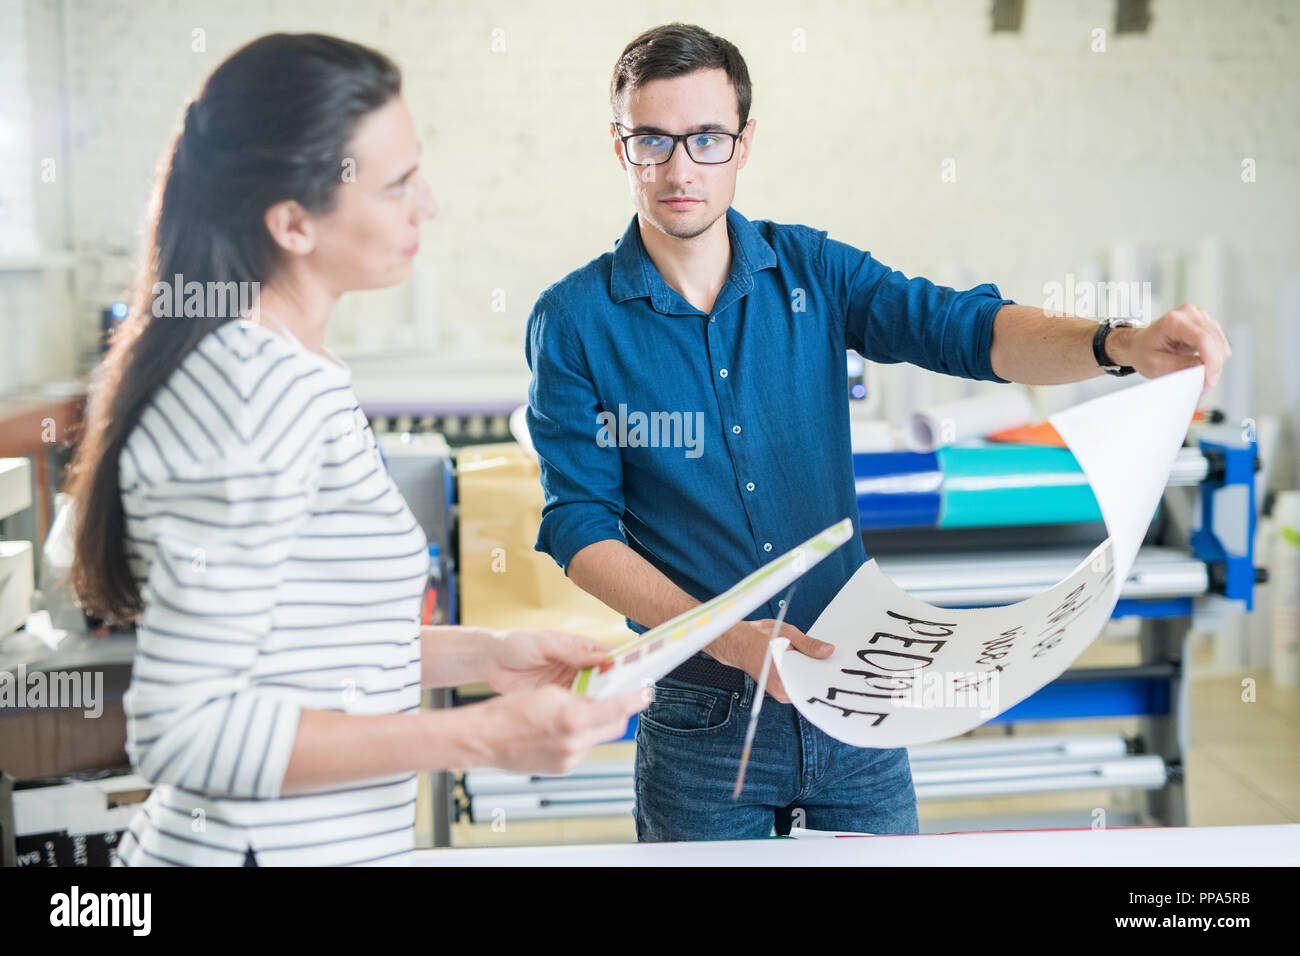 Coworkers of typography discussing placard - Stock Image